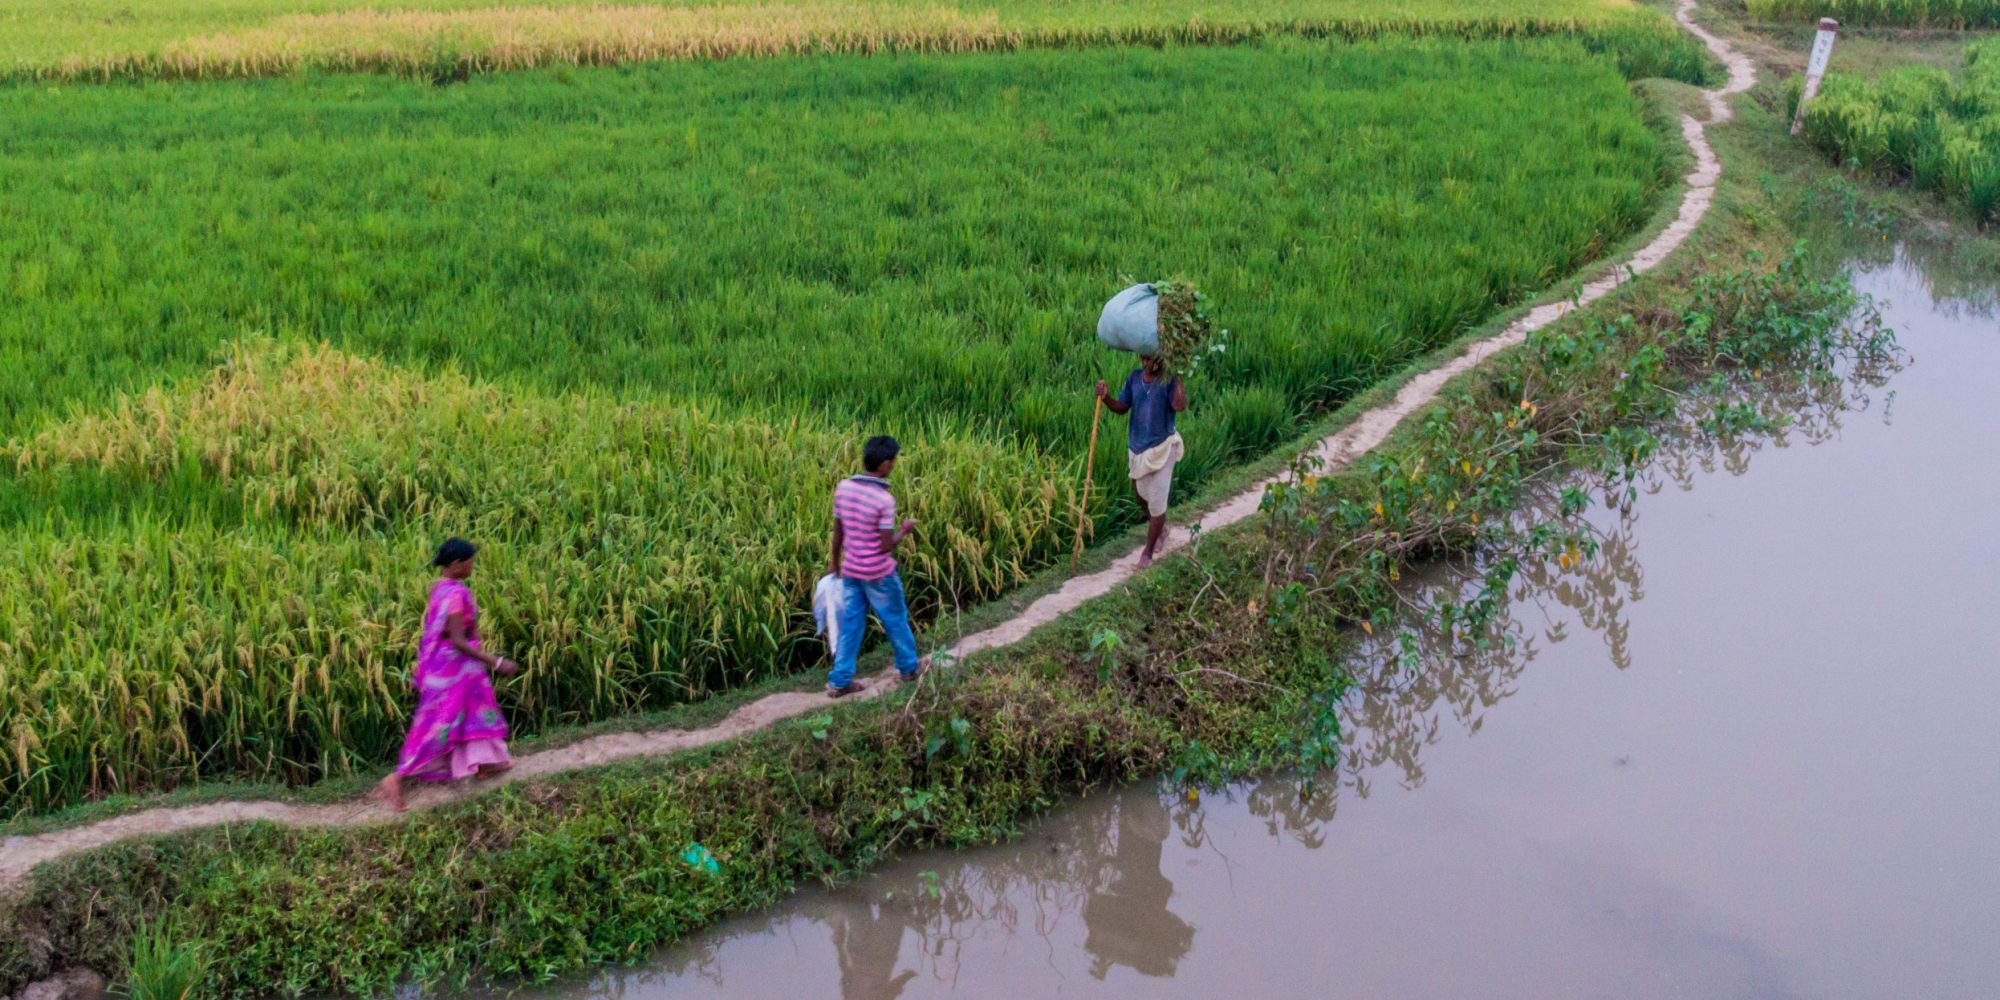 Responding to a crisis: Building a rural workforce to support smallholder farmers